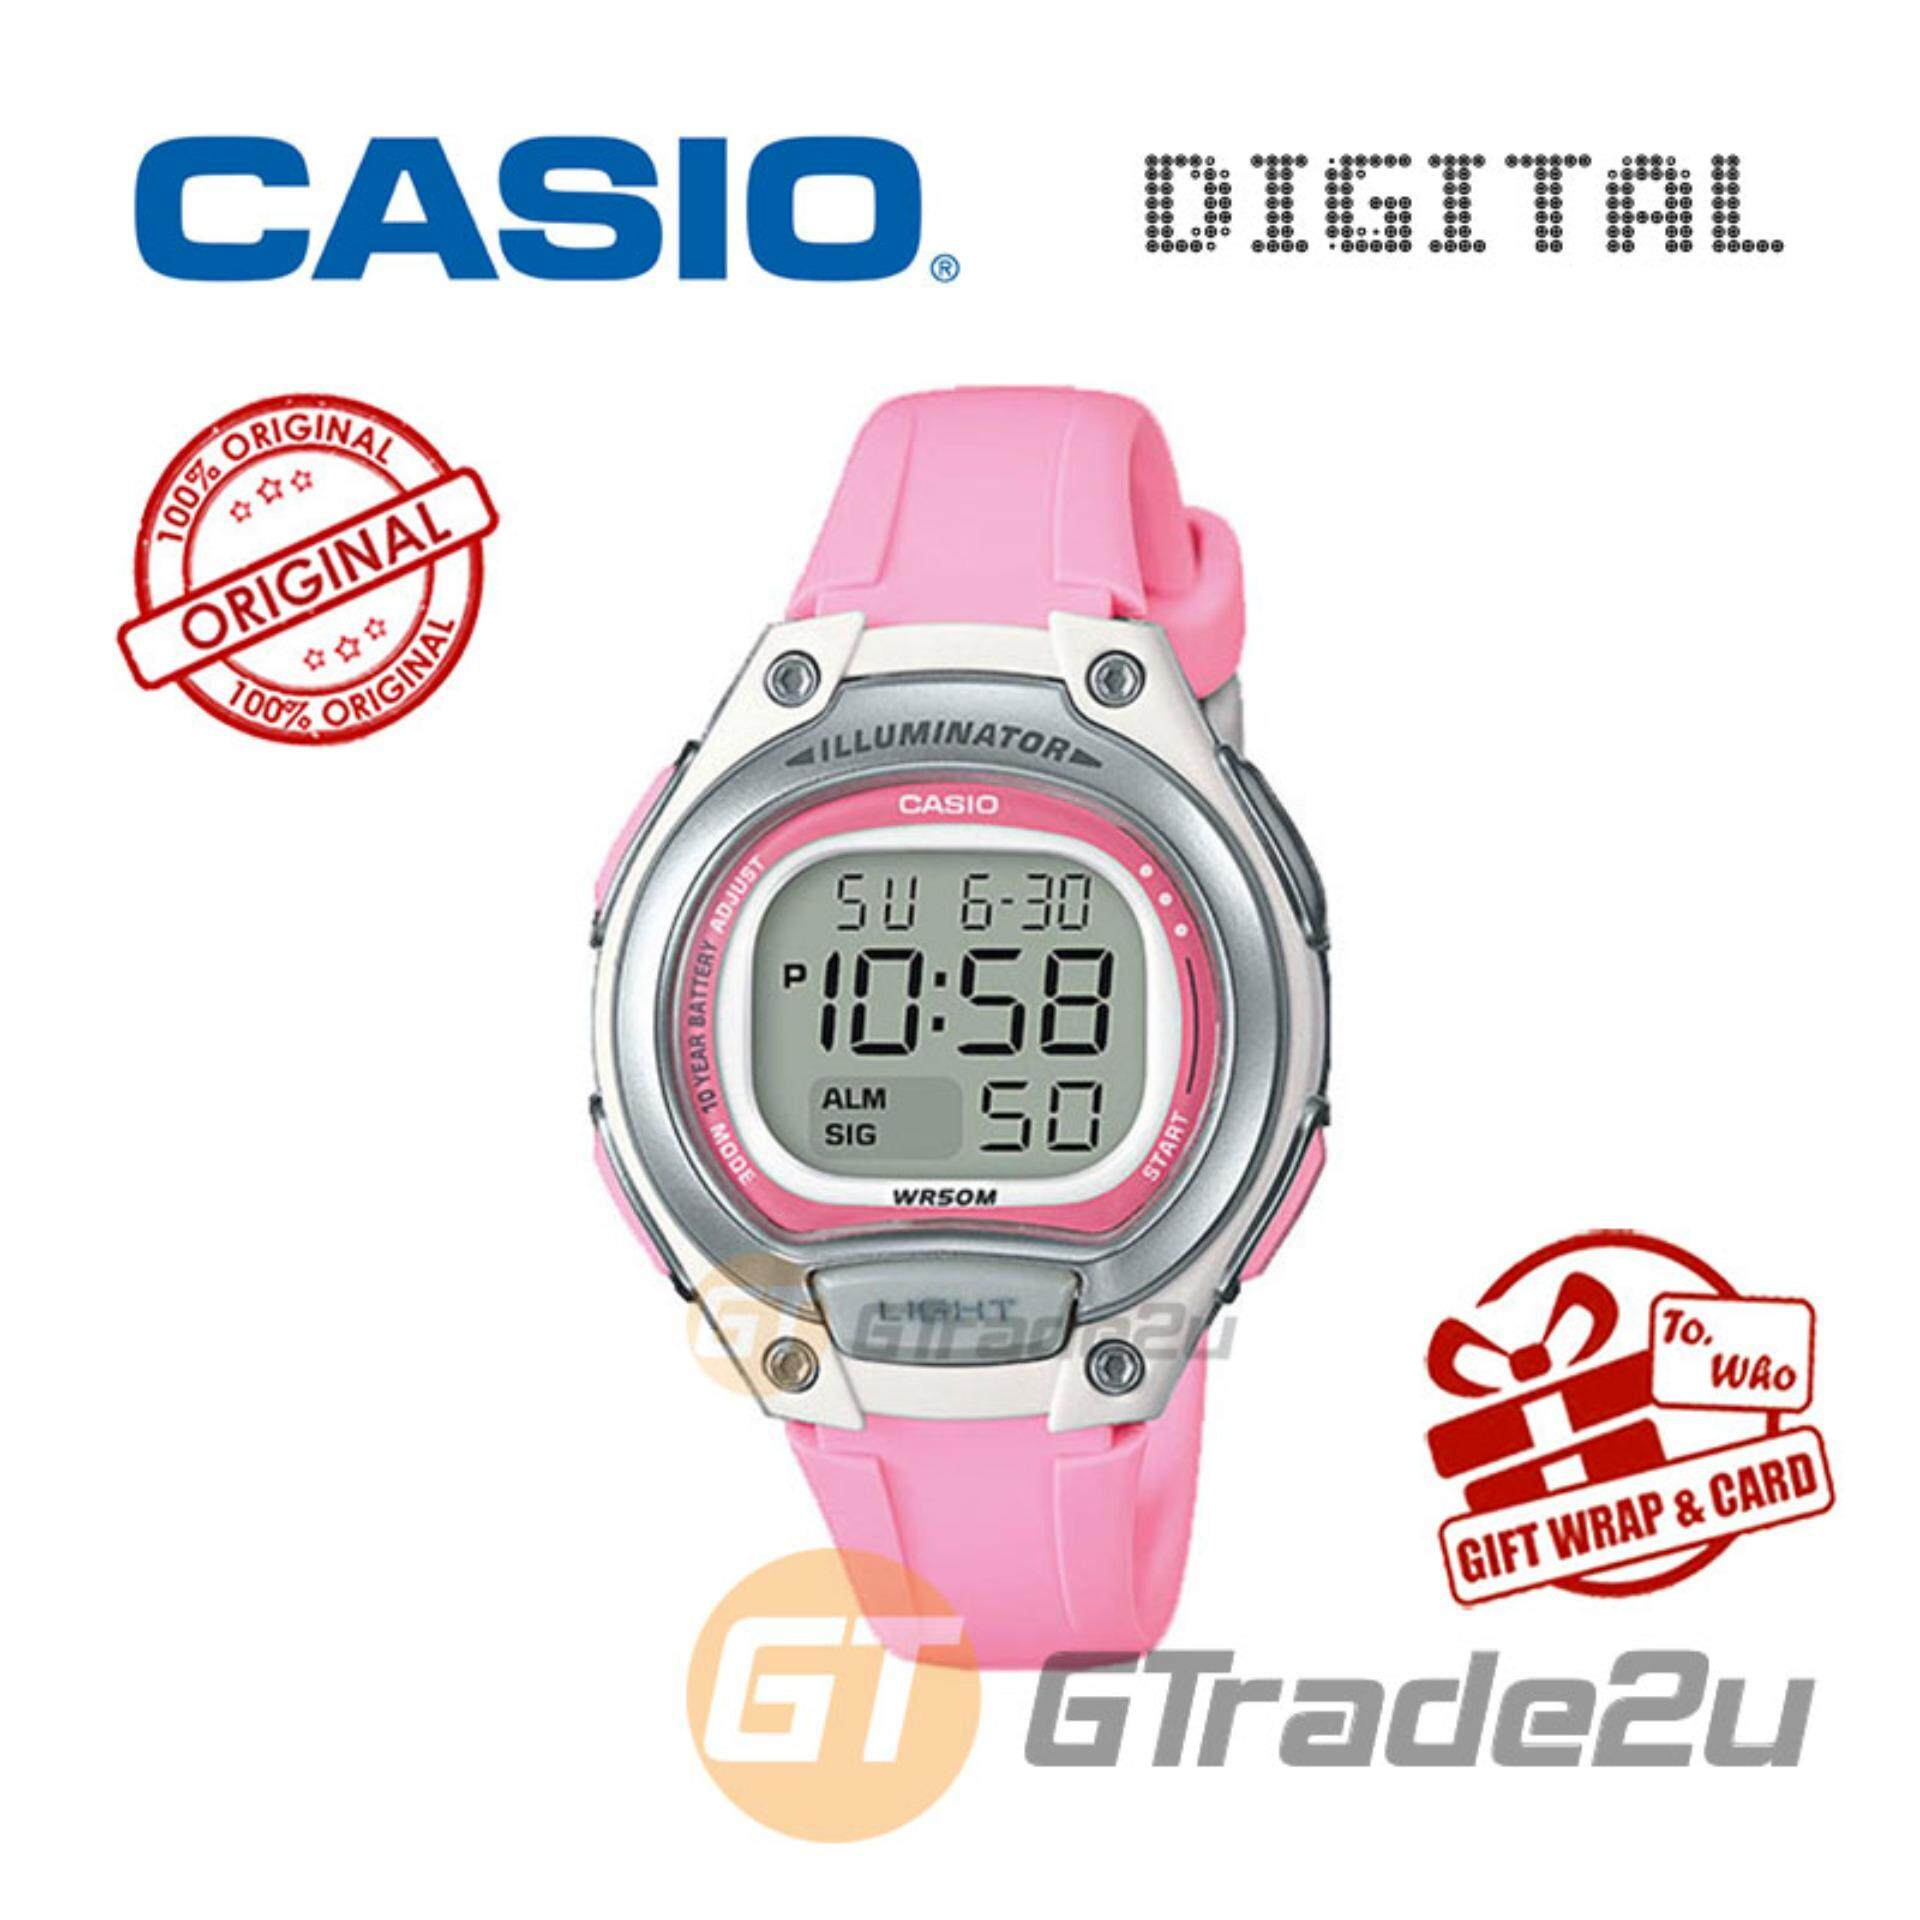 Casio Products For The Best Price In Malaysia Jam Tangan Standard Ae 1200wh 1bv Kids Ladies Lw 203 4a Digital Watch Cool Futuristic Standout